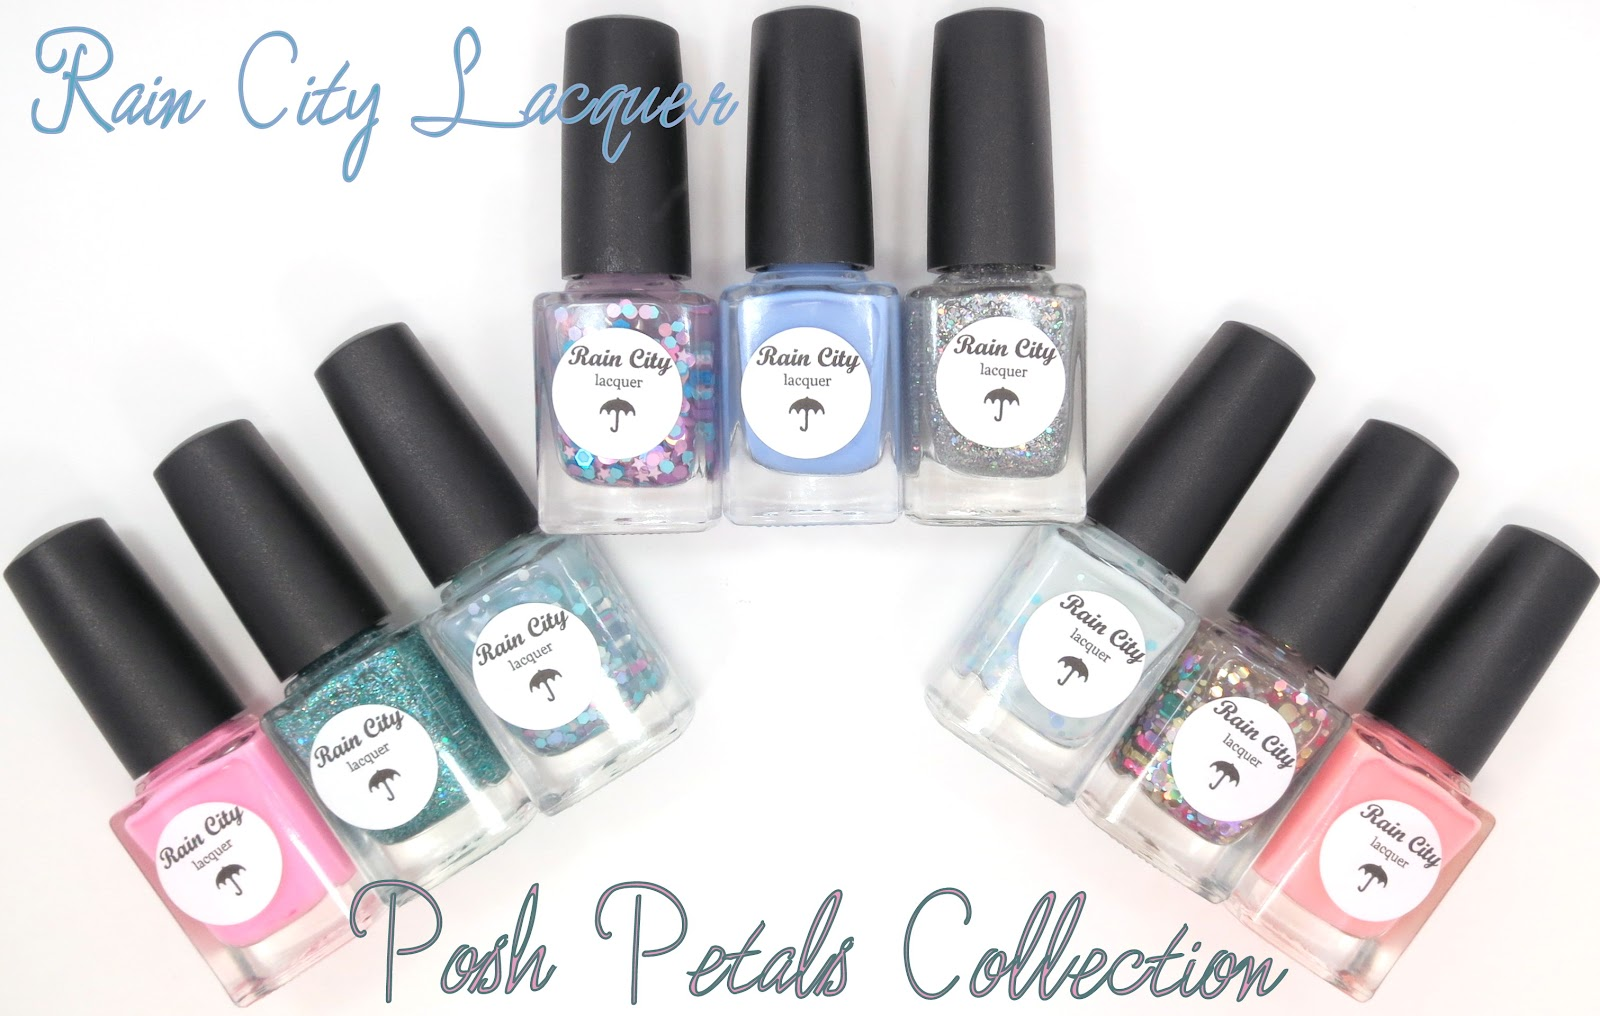 Rain City Lacquer Posh Petals Collection